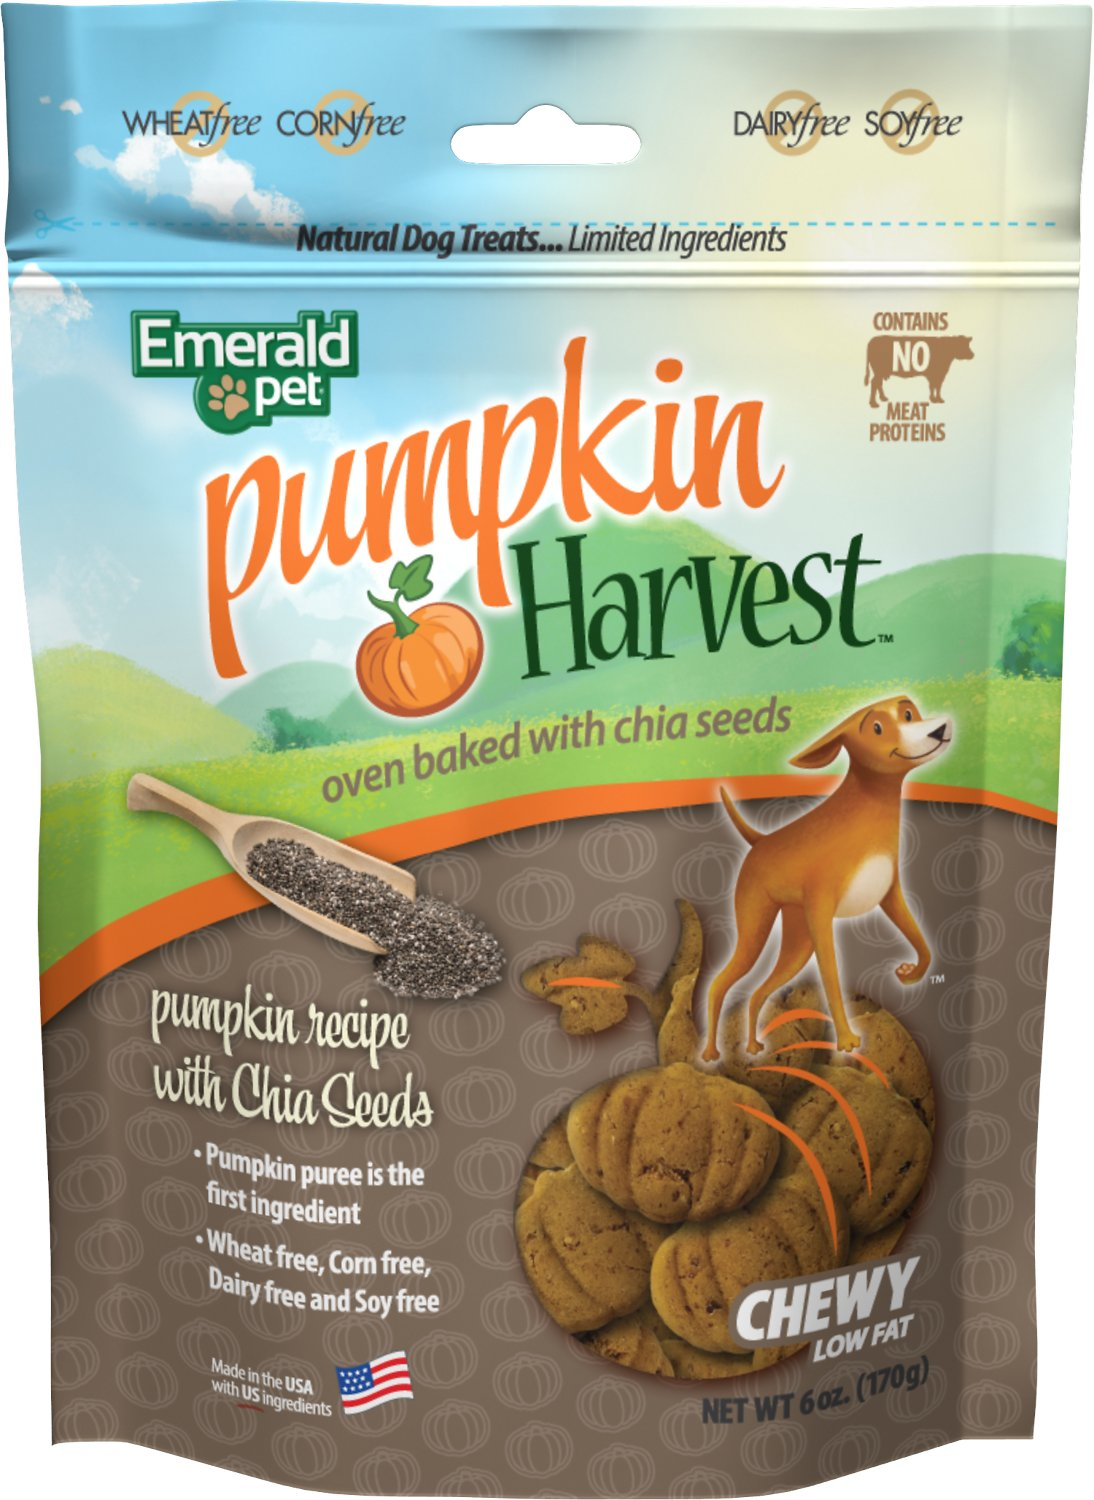 Emerald Pet Pumpkin Harvest Oven Baked With Chia Seed Dog Treats, 6-oz